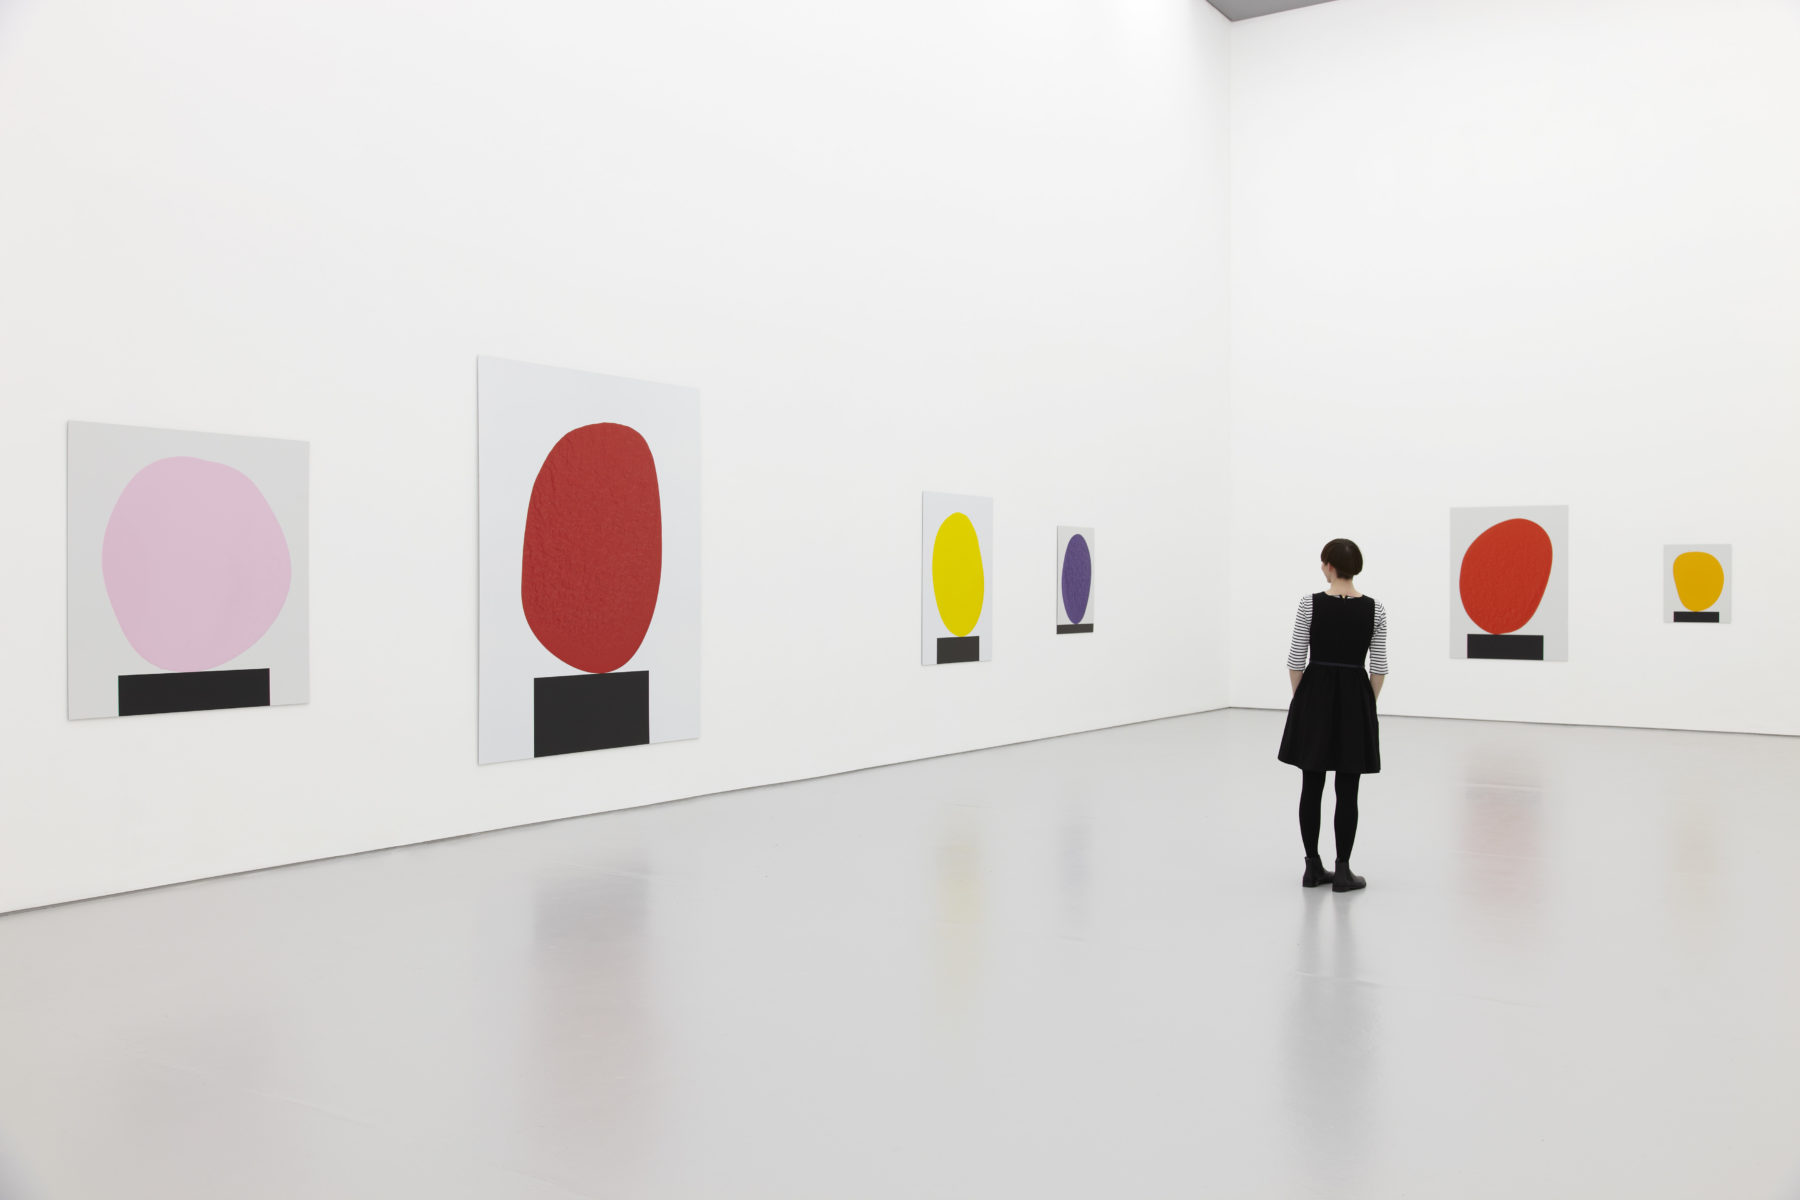 Installation view of David Batchelor Flatlands (2013). A visitor looks at images of coloured blobs balancing on black rectangles.